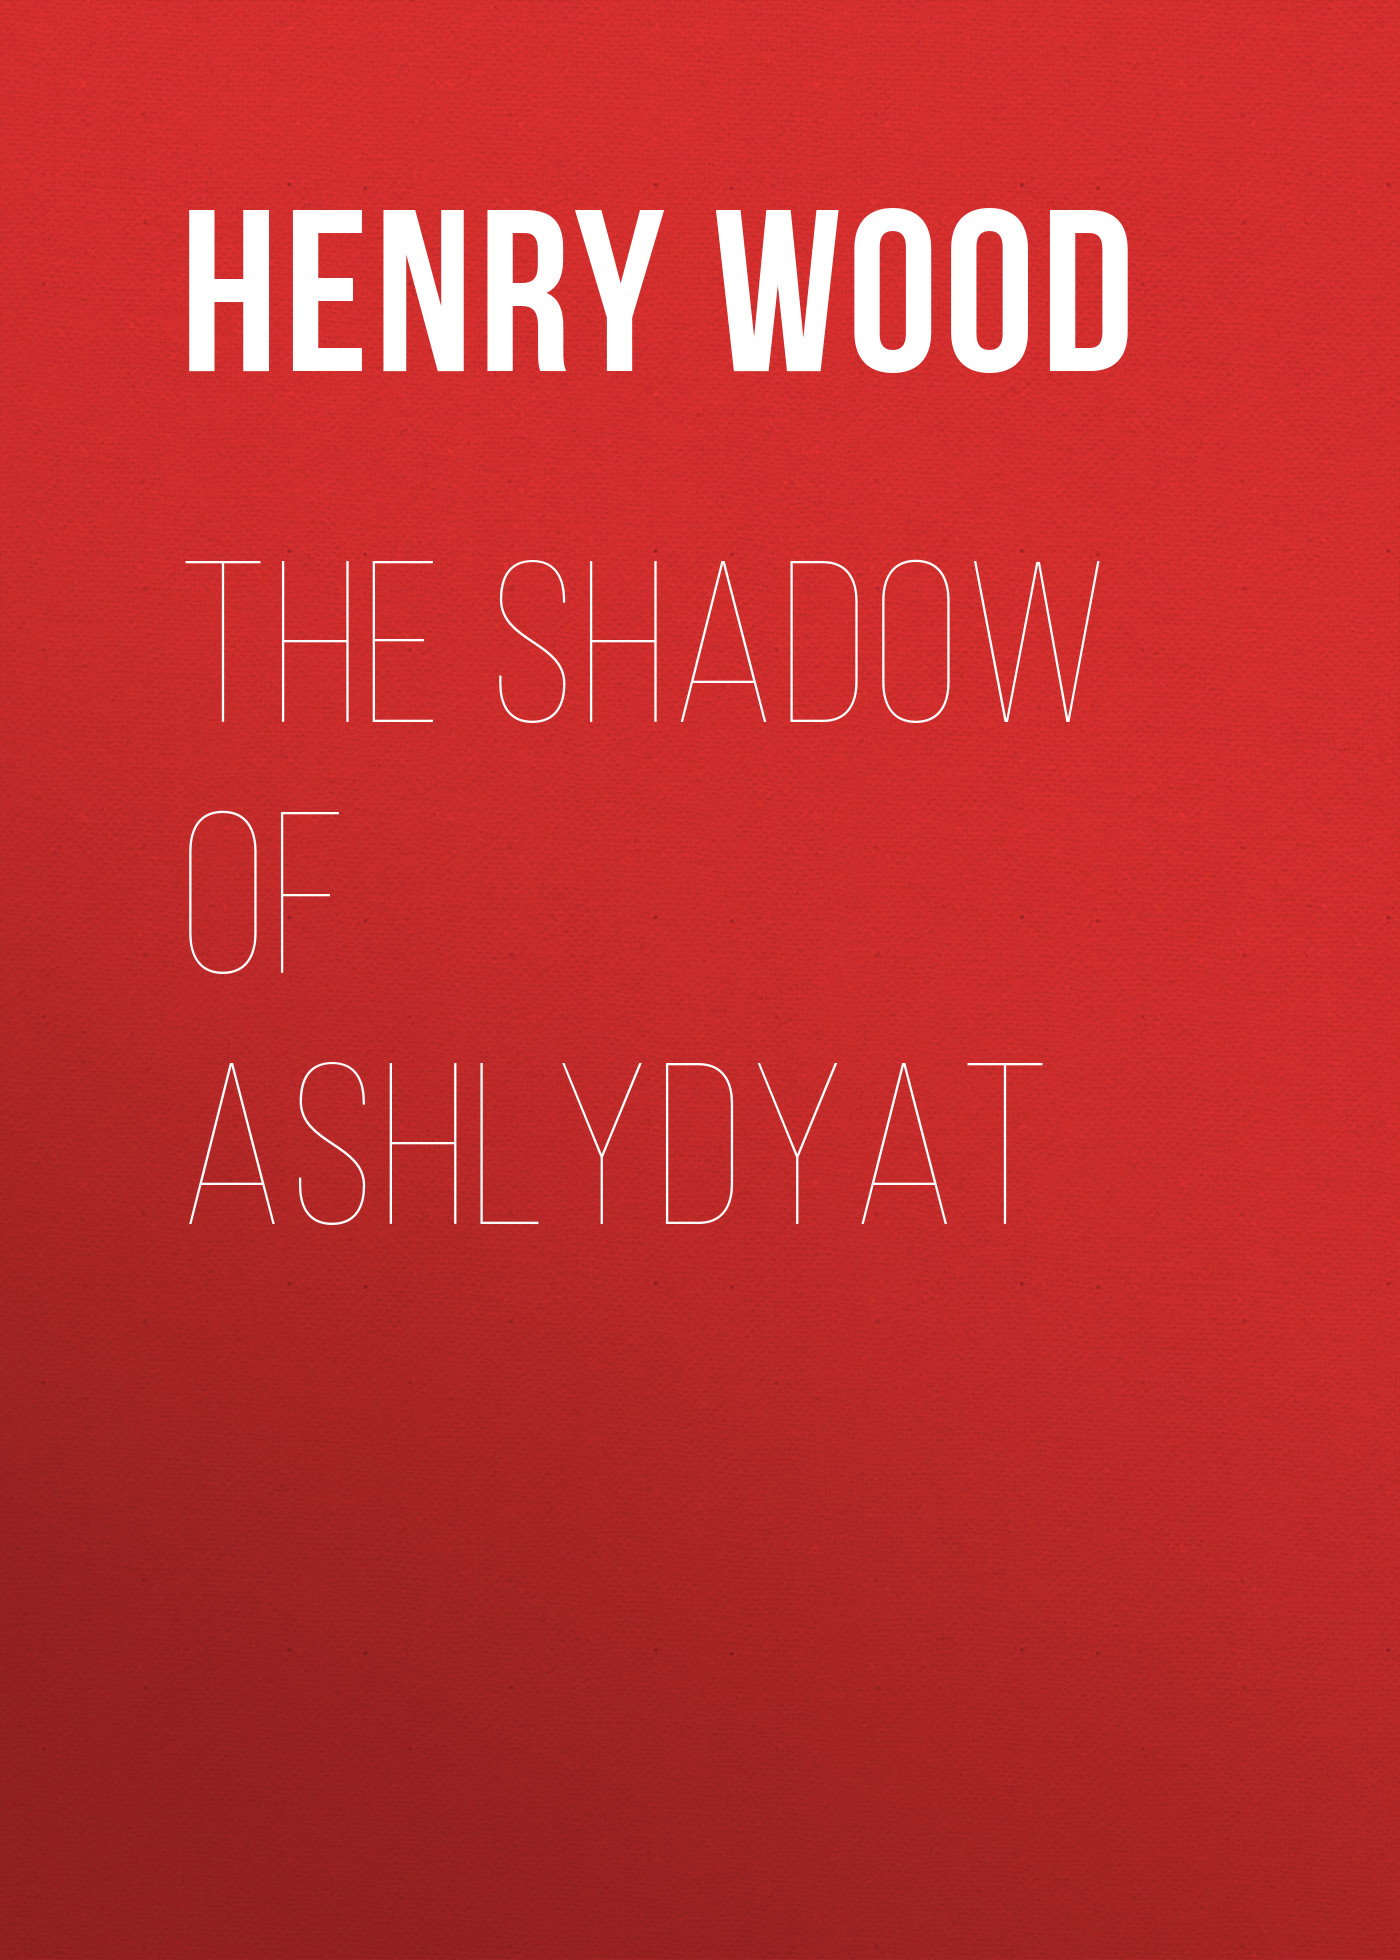 Henry Wood The Shadow of Ashlydyat henry wood trevlyn hold